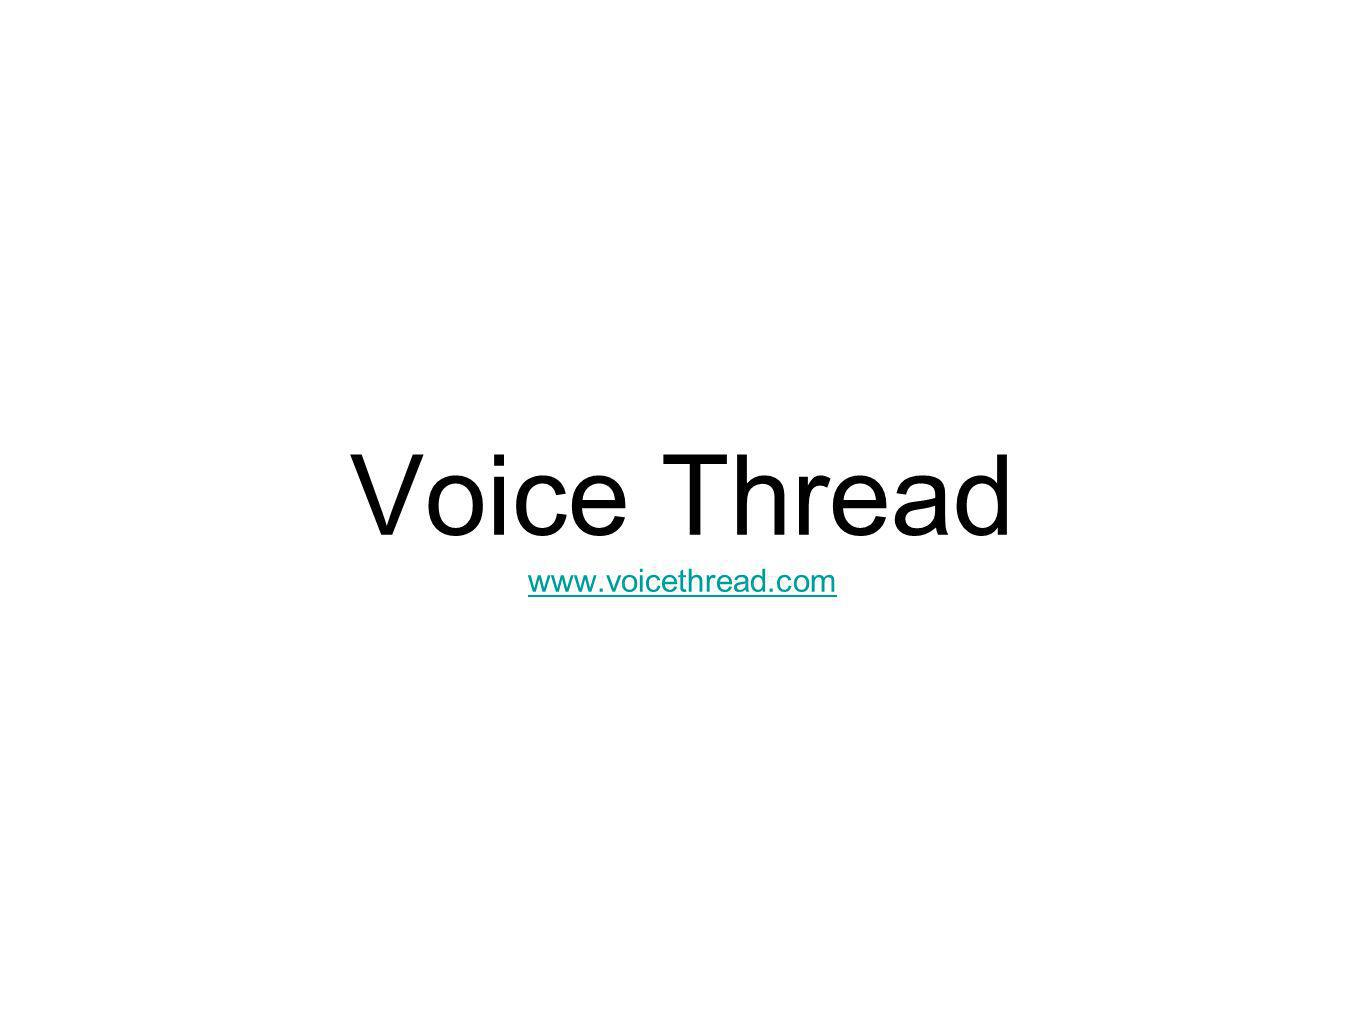 Voice Thread www.voicethread.com www.voicethread.com